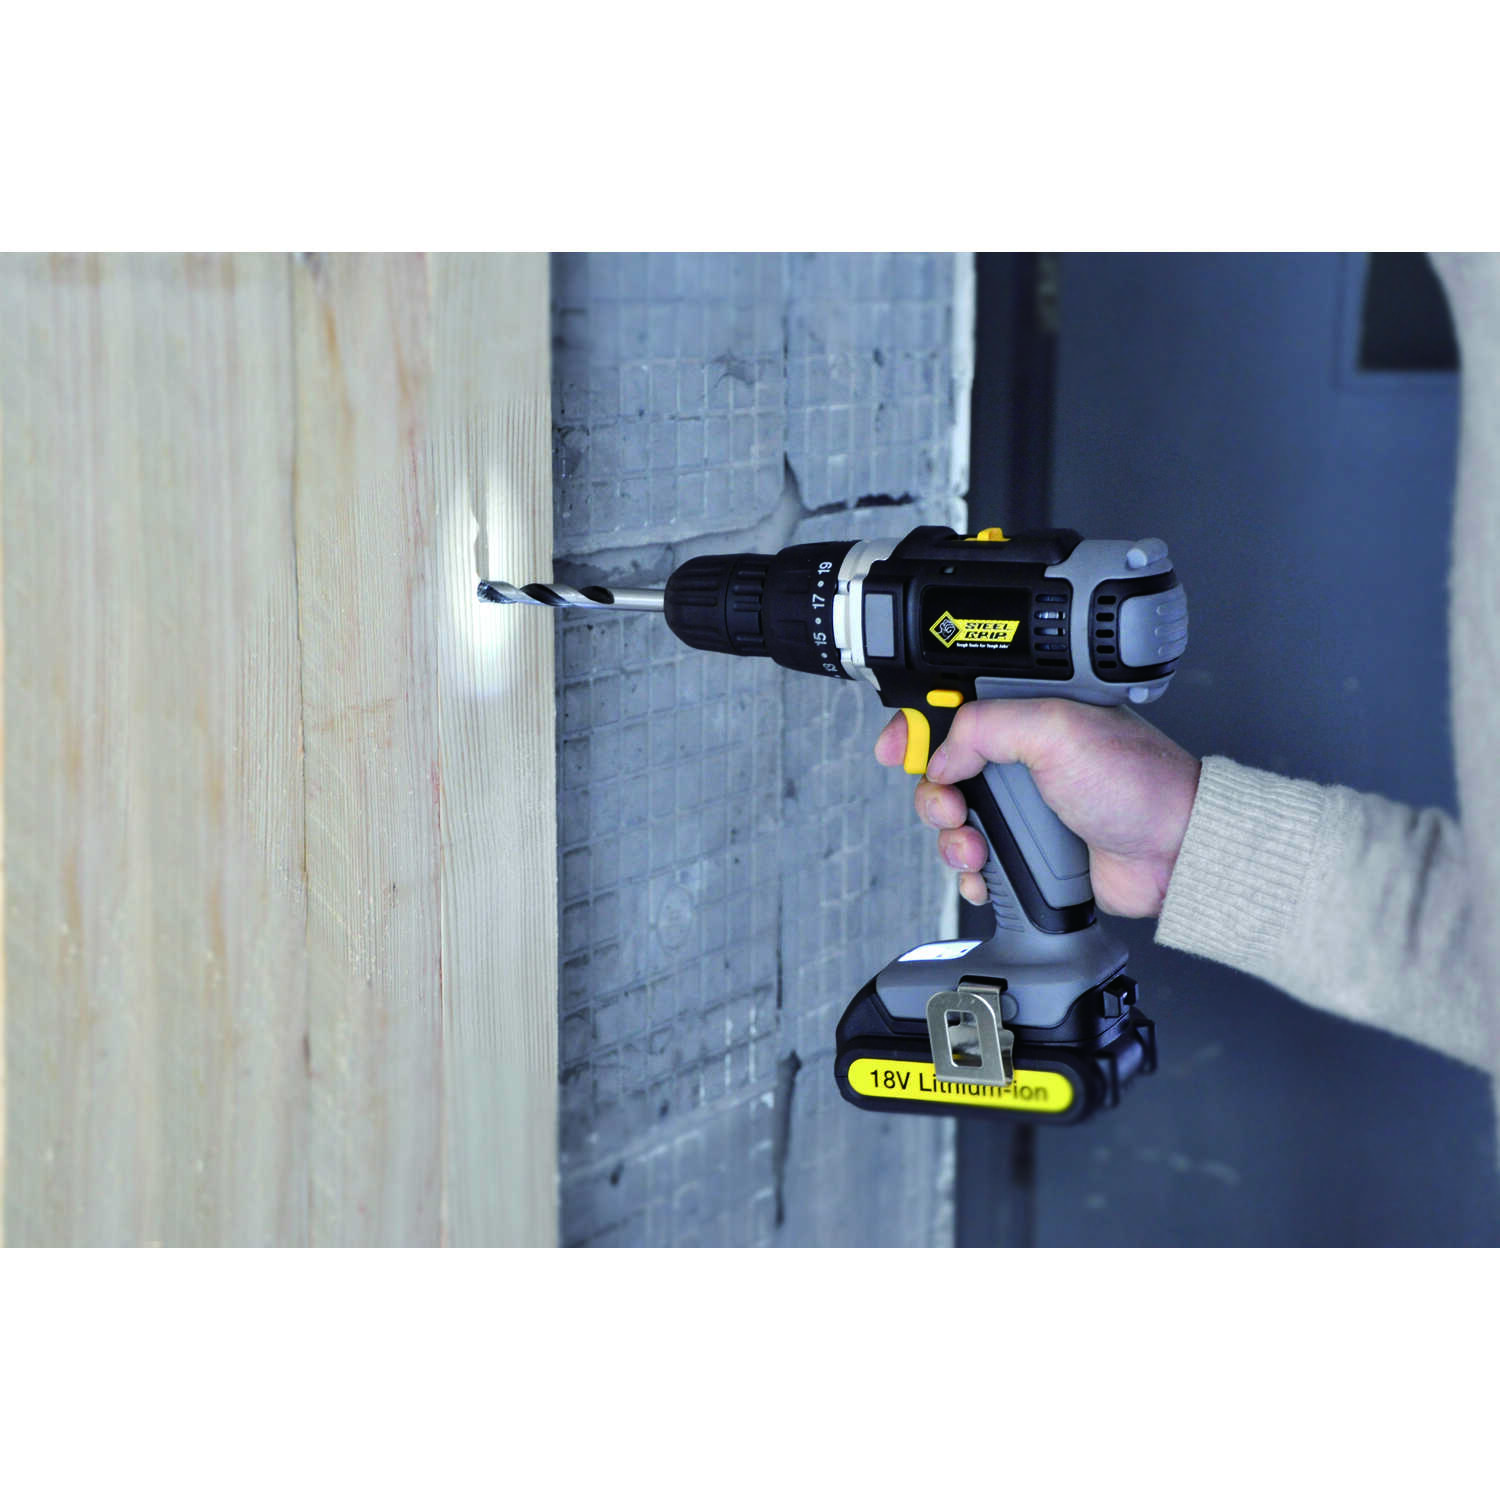 Steel Grip  18 volt 3/8 in. 1400 rpm Cordless Drill/Driver